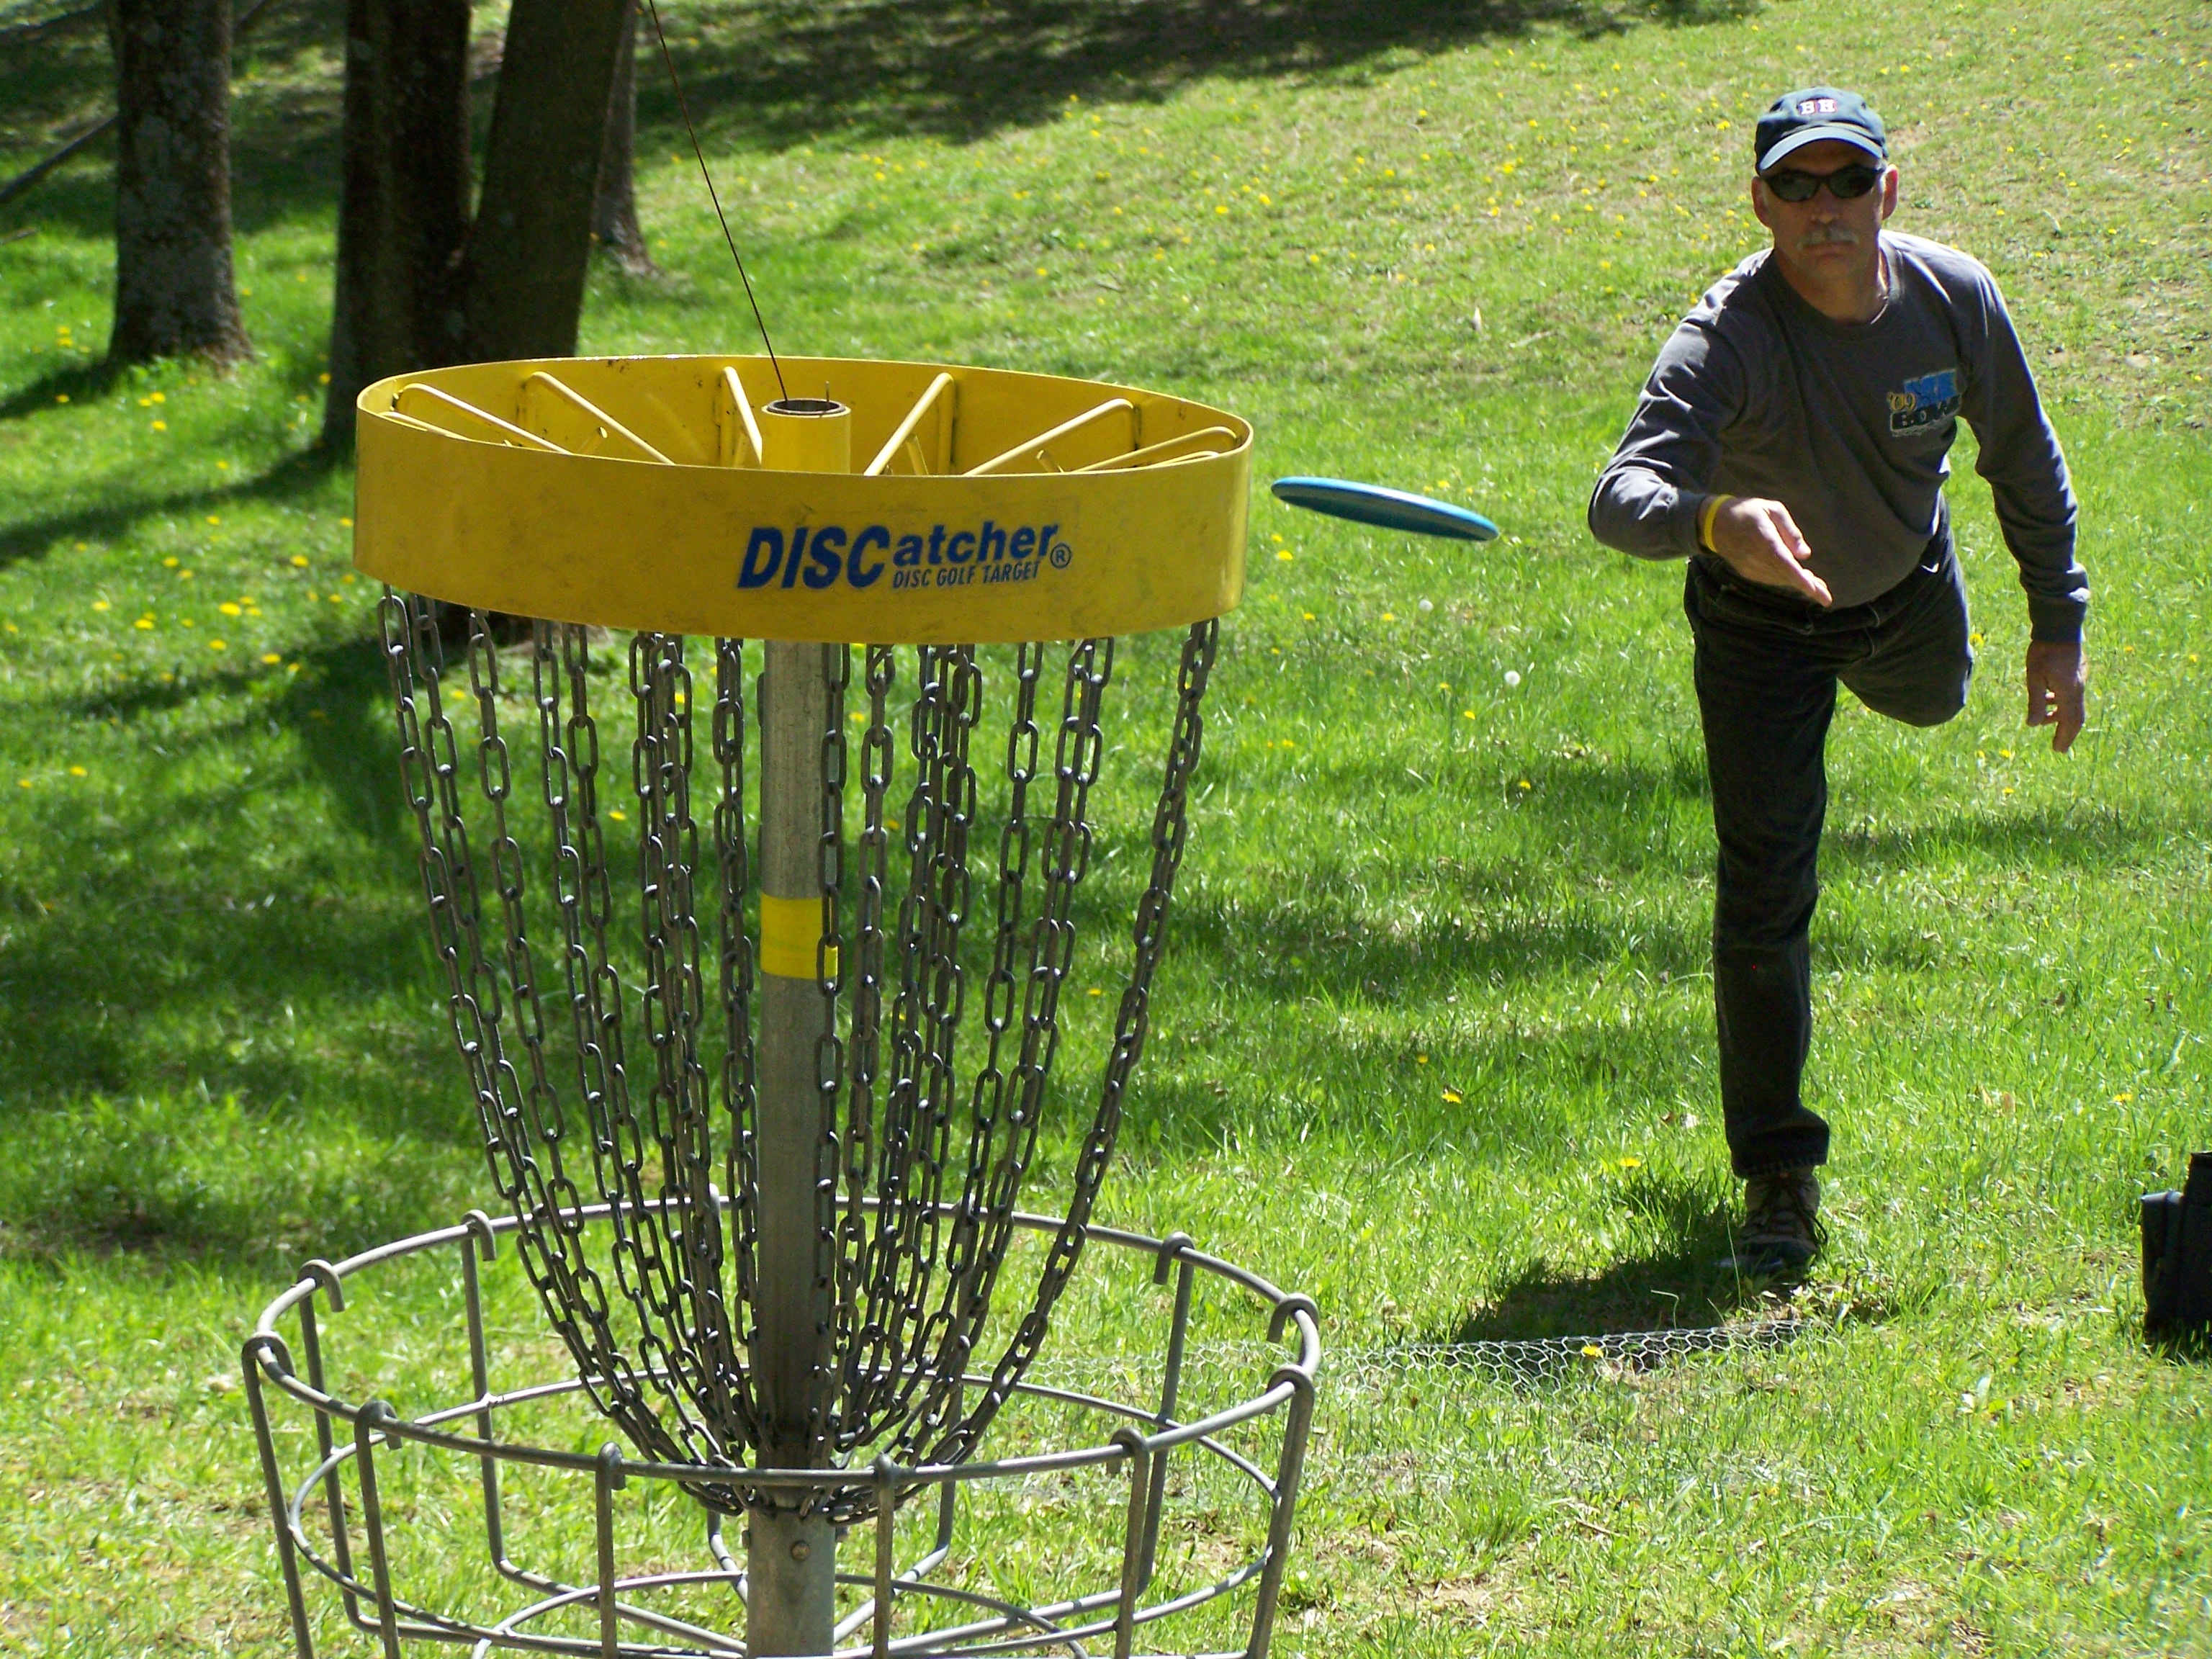 westover park disc golf